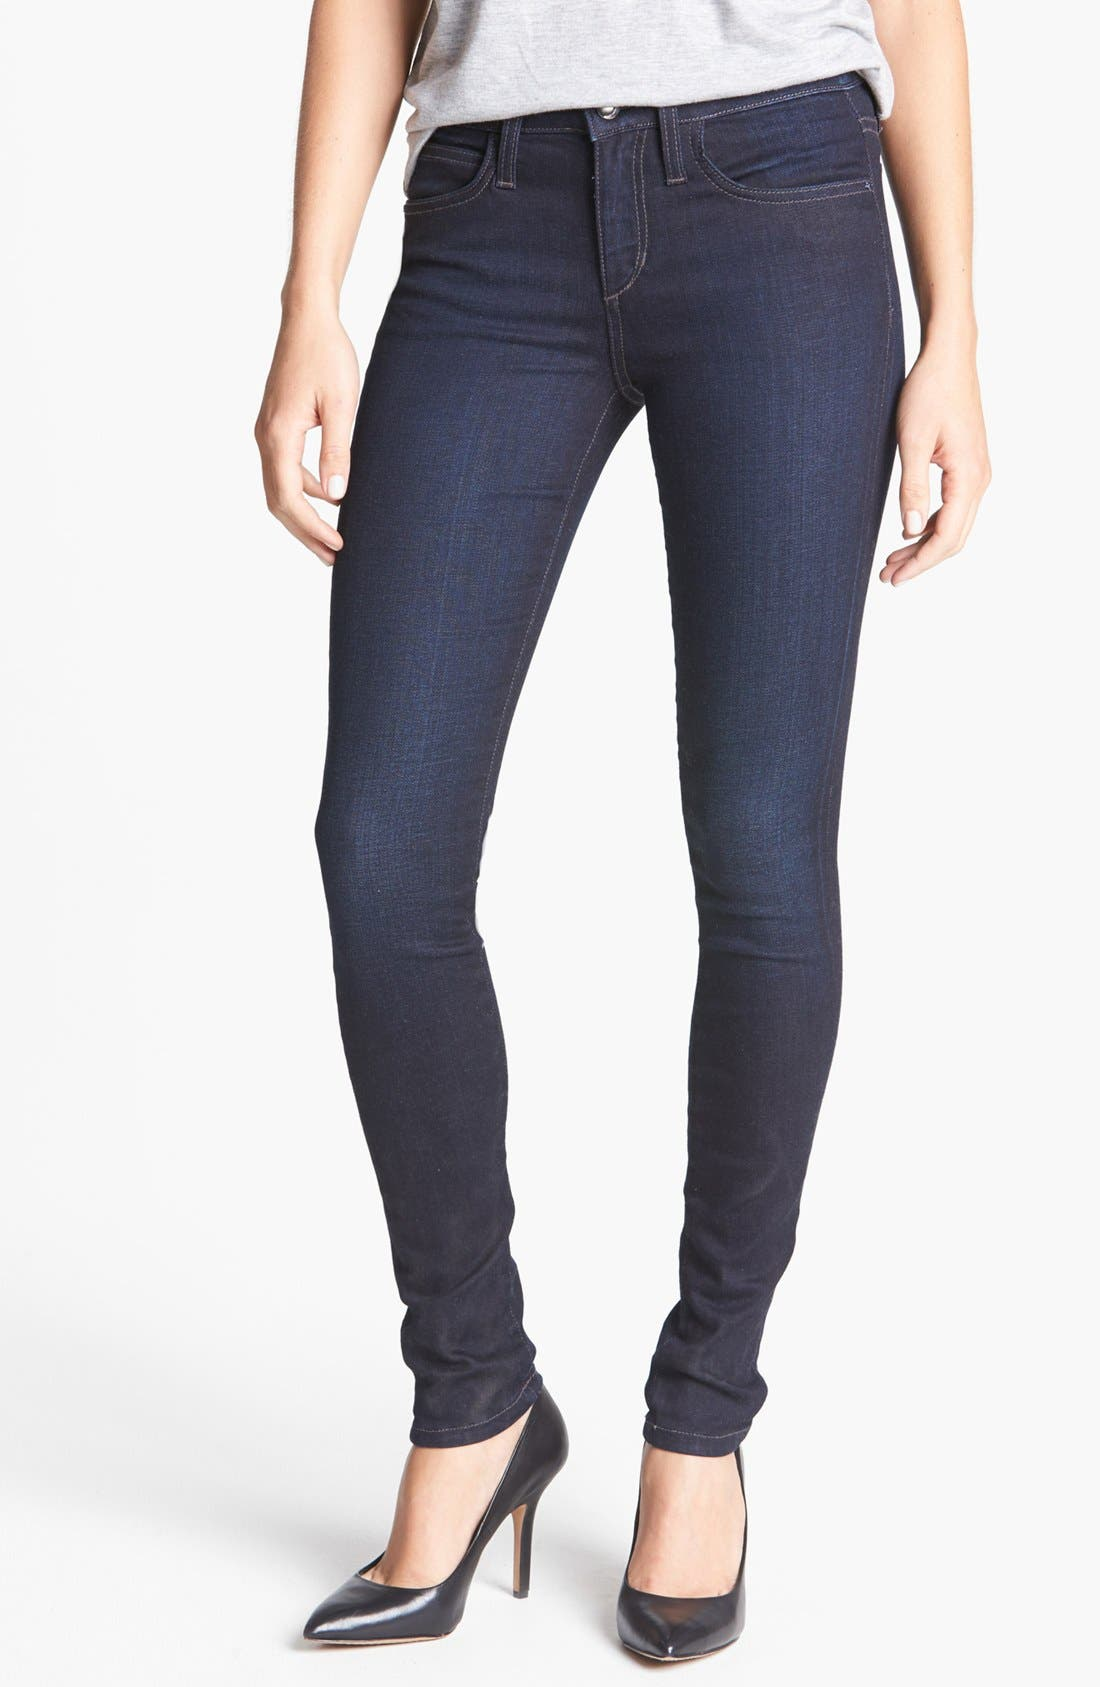 Alternate Image 1 Selected - Joe's 'The Skinny' Stretch Skinny Jeans (Auria)